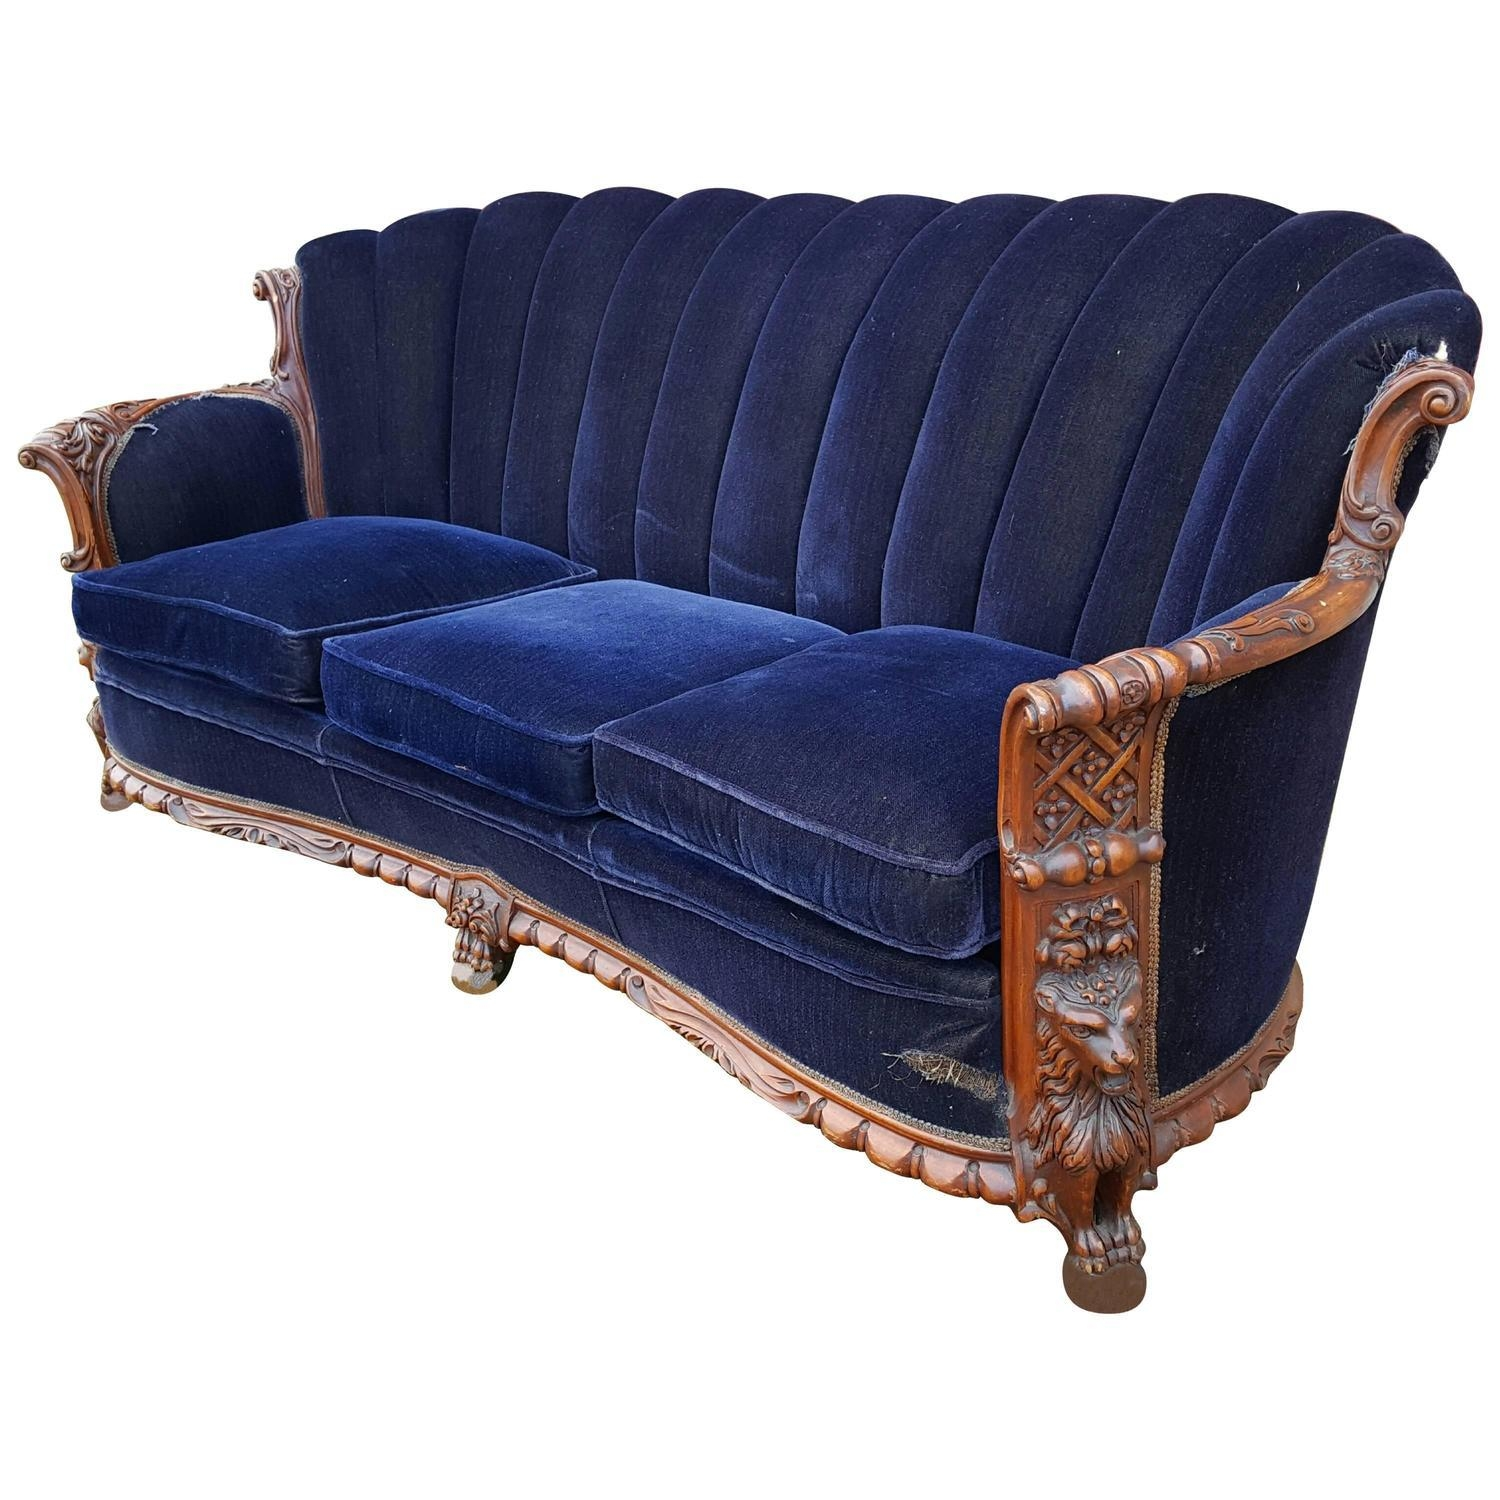 1930S Mohair And Carved Wood Sofa, Carved Lion Motif At 1Stdibs regarding 1930S Sofas